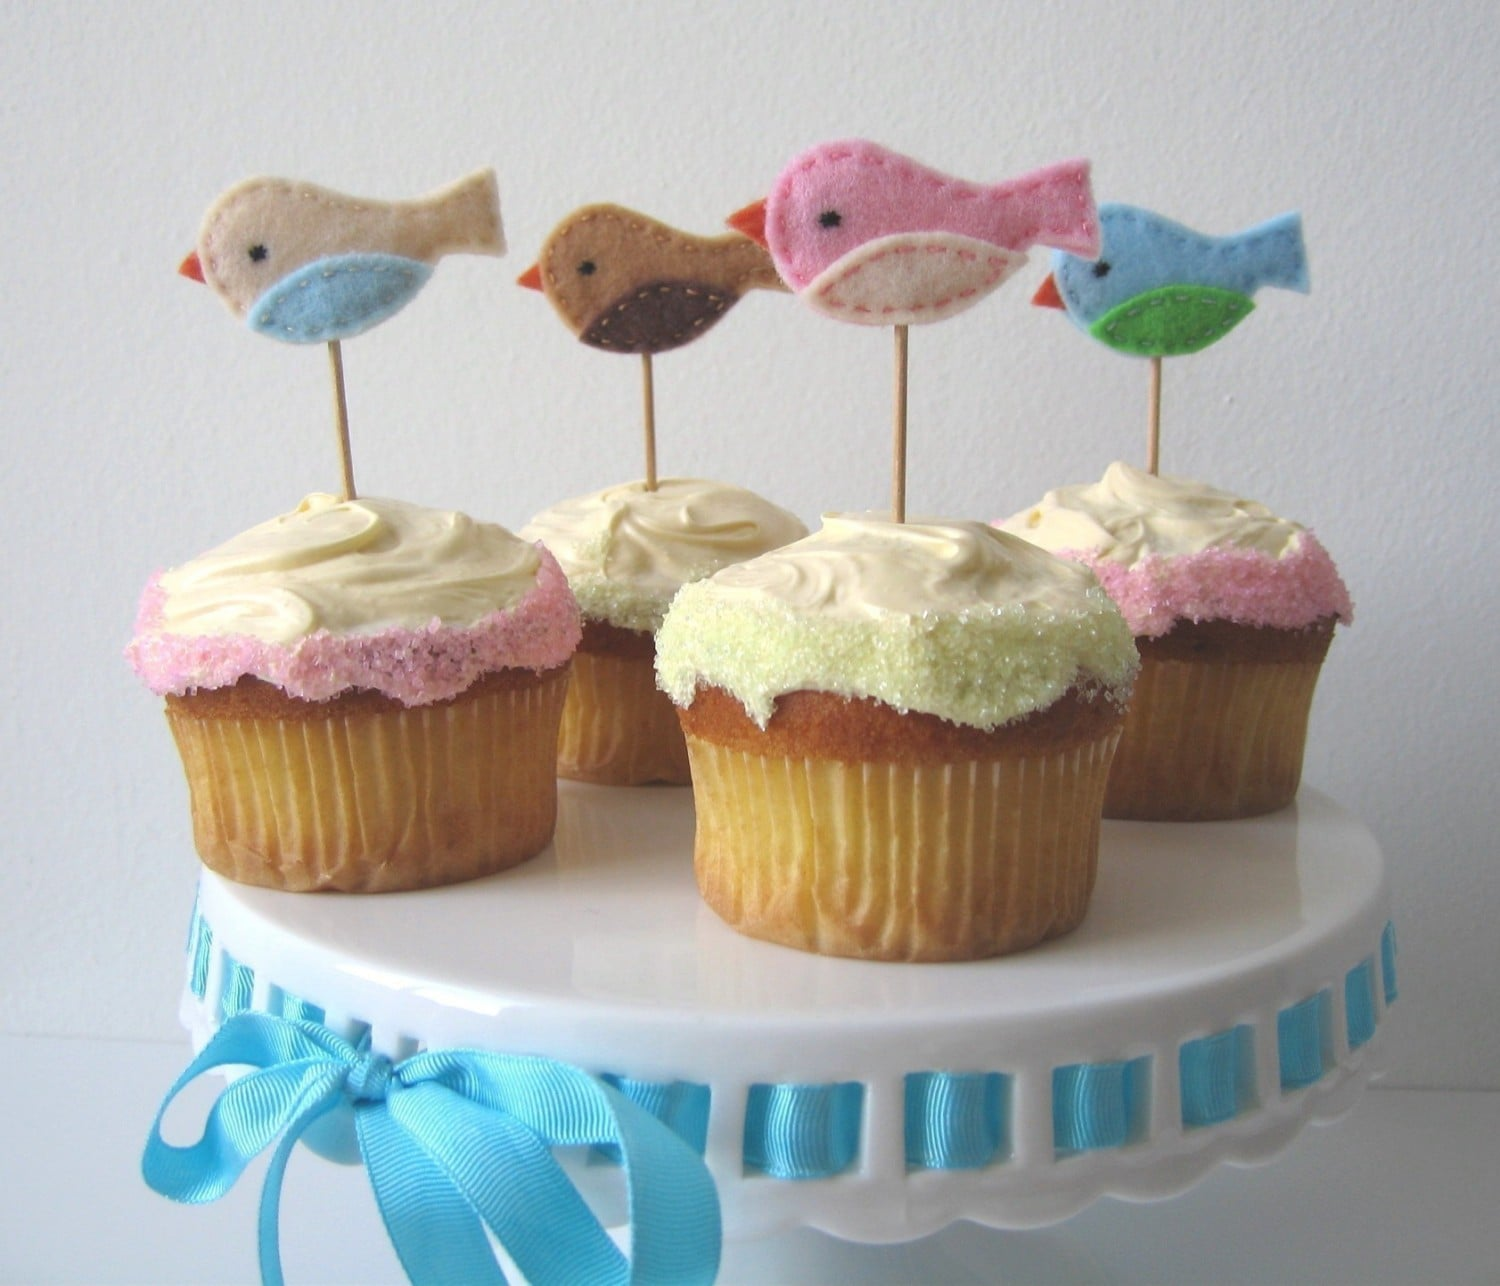 Little Birdie Cupcake Toppers ($18)